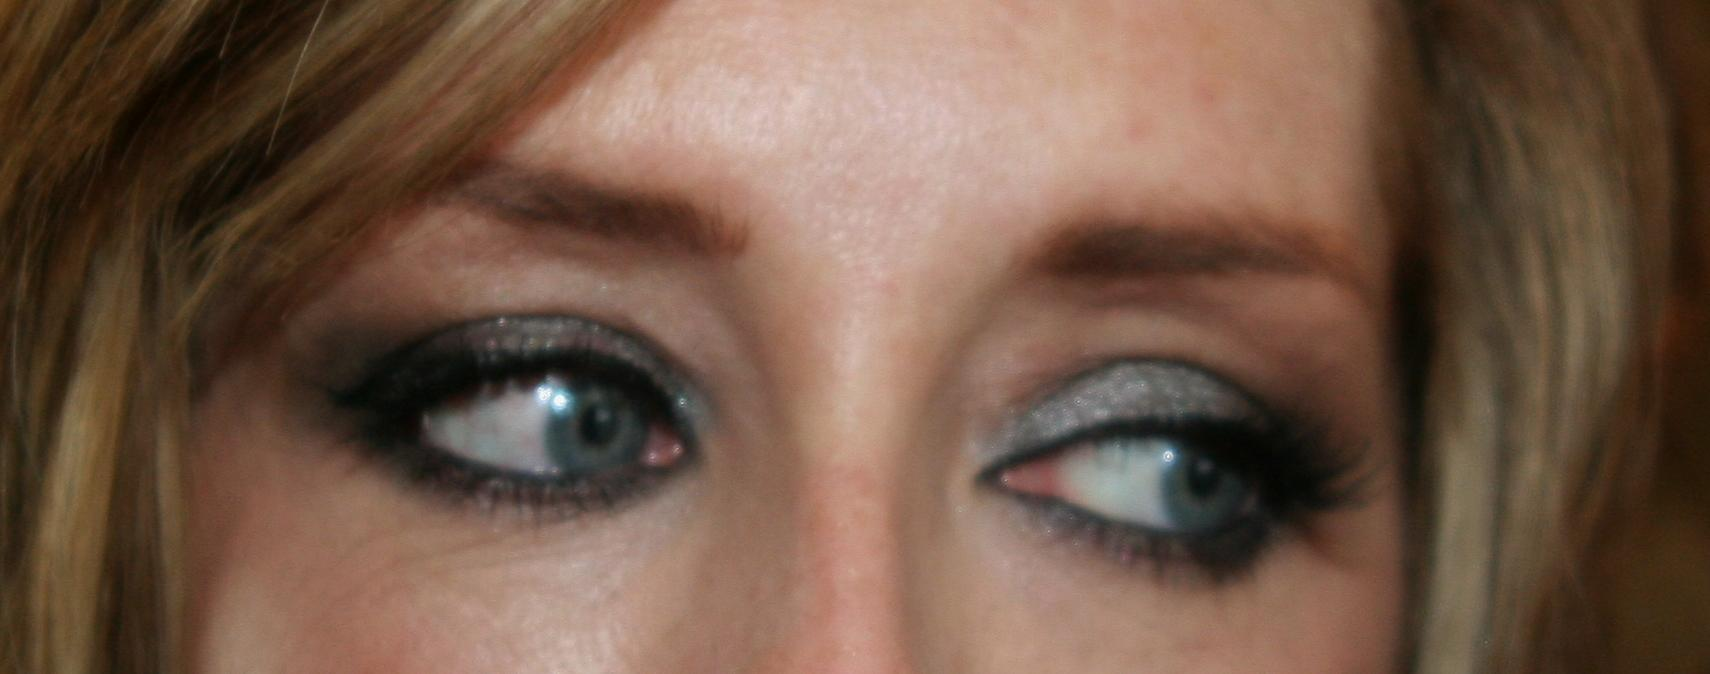 Daytime eye to Sultry Nighttime Eyes! - image 4 - student project